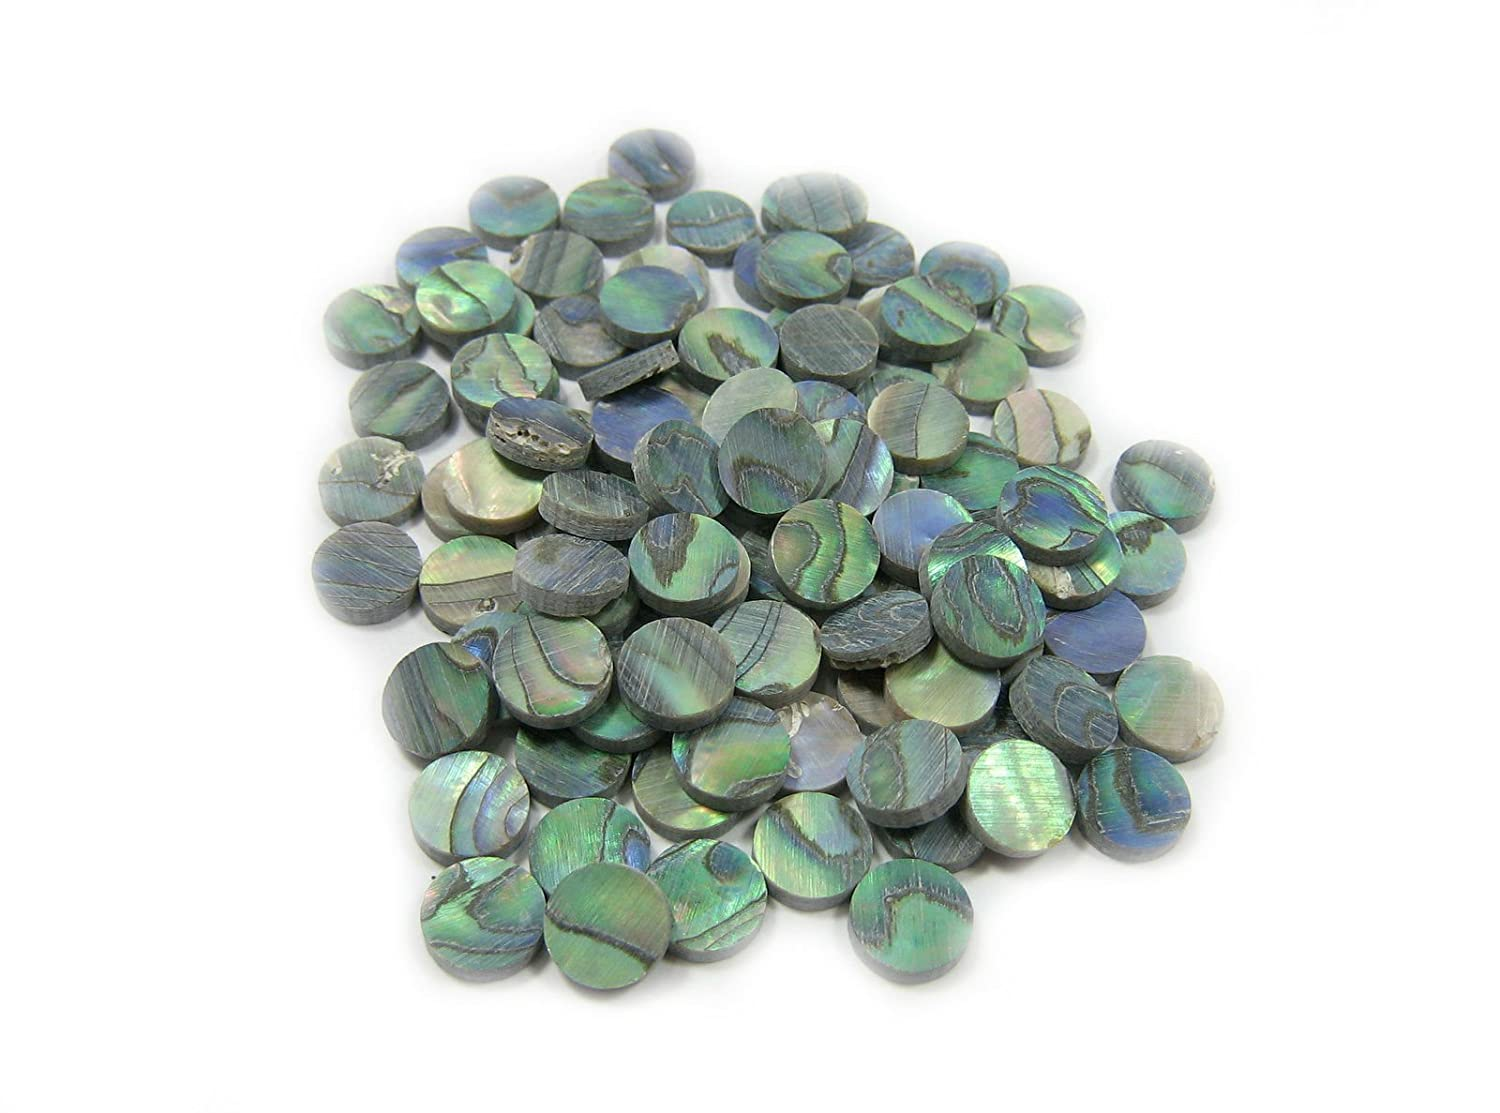 100 Pieces 5Mm Round X 1.5Mm Thickness Green Abalone Fretboard Position Mark Inlay Dots für Ukulele Guitar (5Mm G)